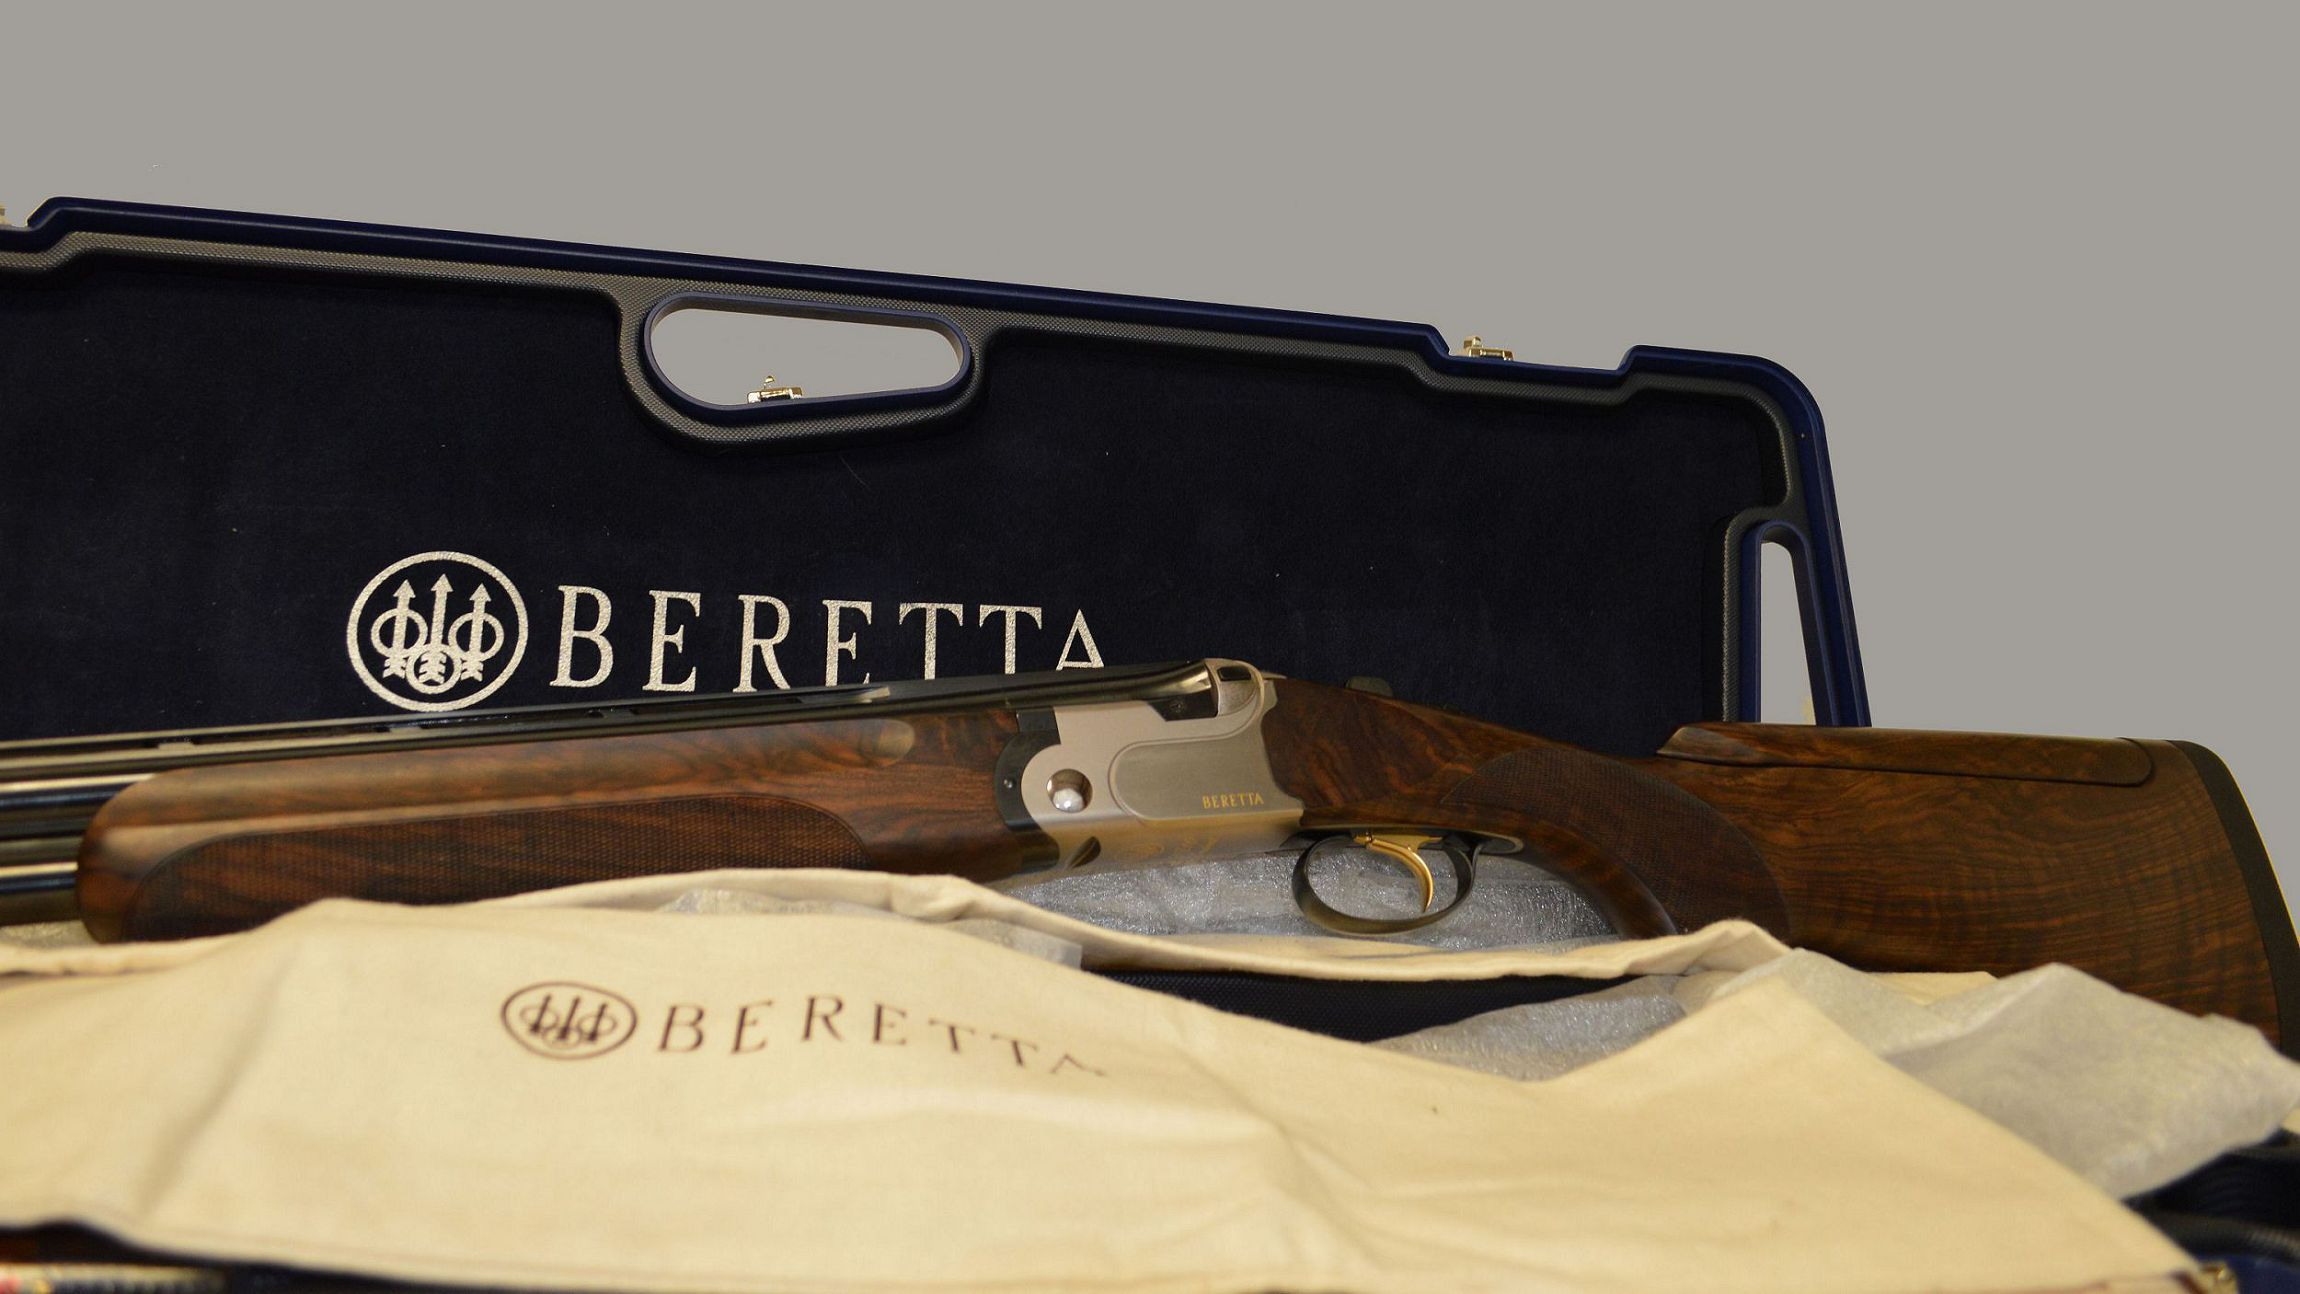 Beretta High Quality Wallpapers